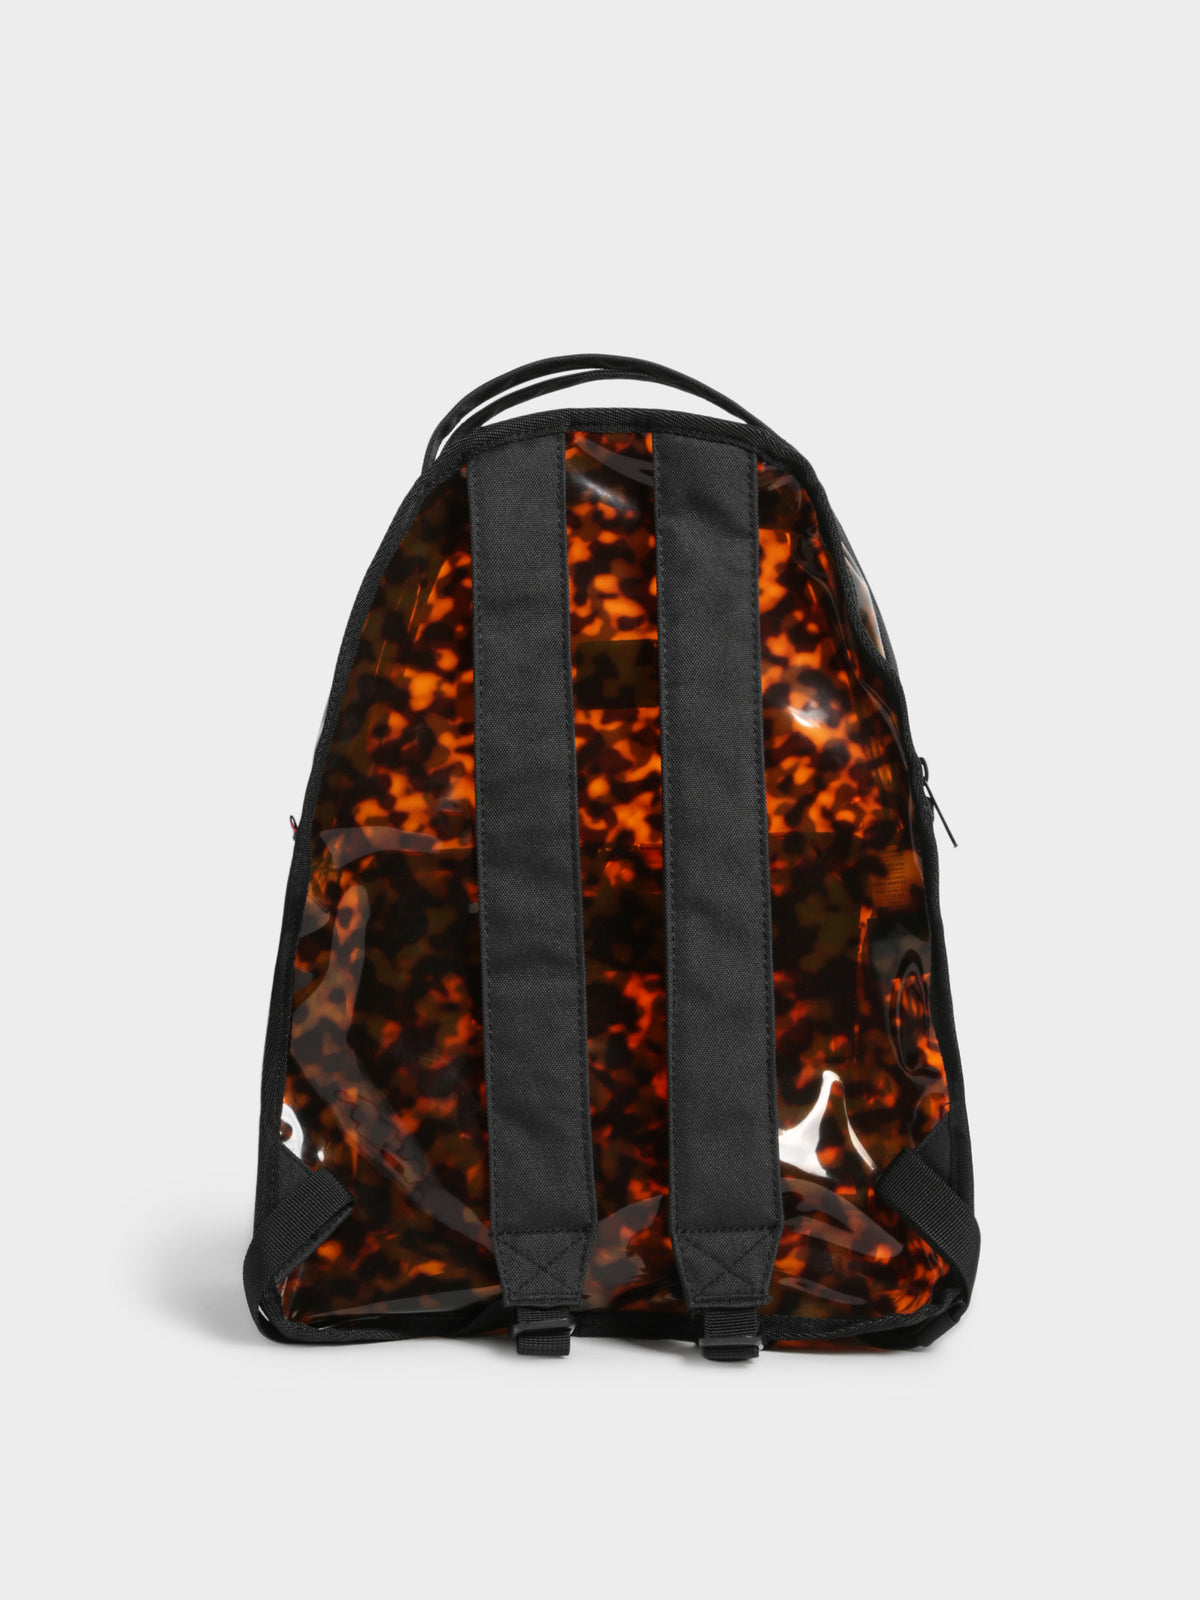 Nova Mid Volume Backpack in Clear Tortoise Shell